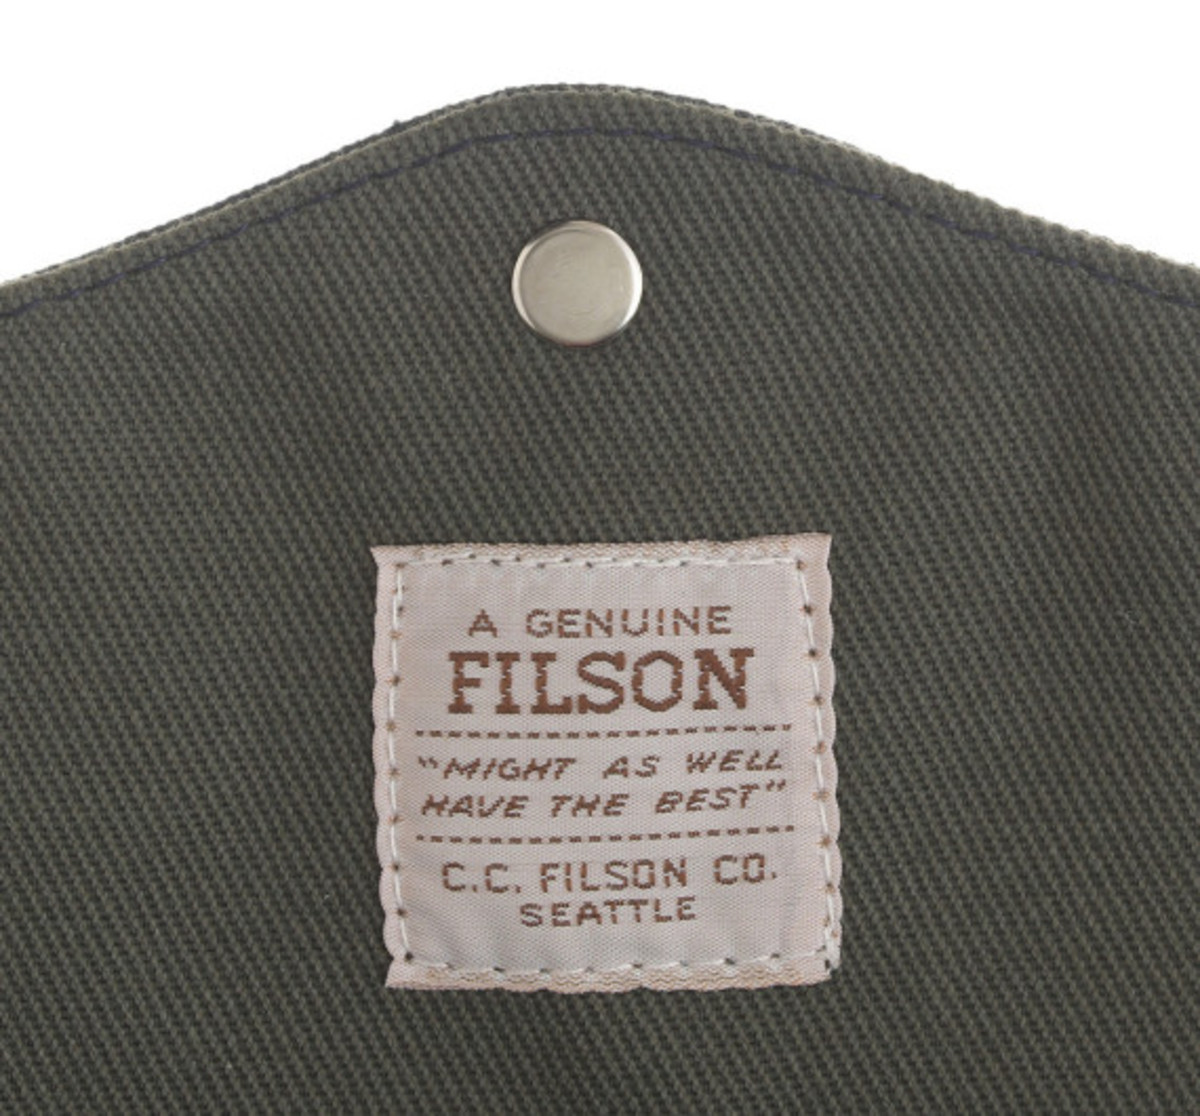 filson-jcrew-fall-2013-capsule-collection-09